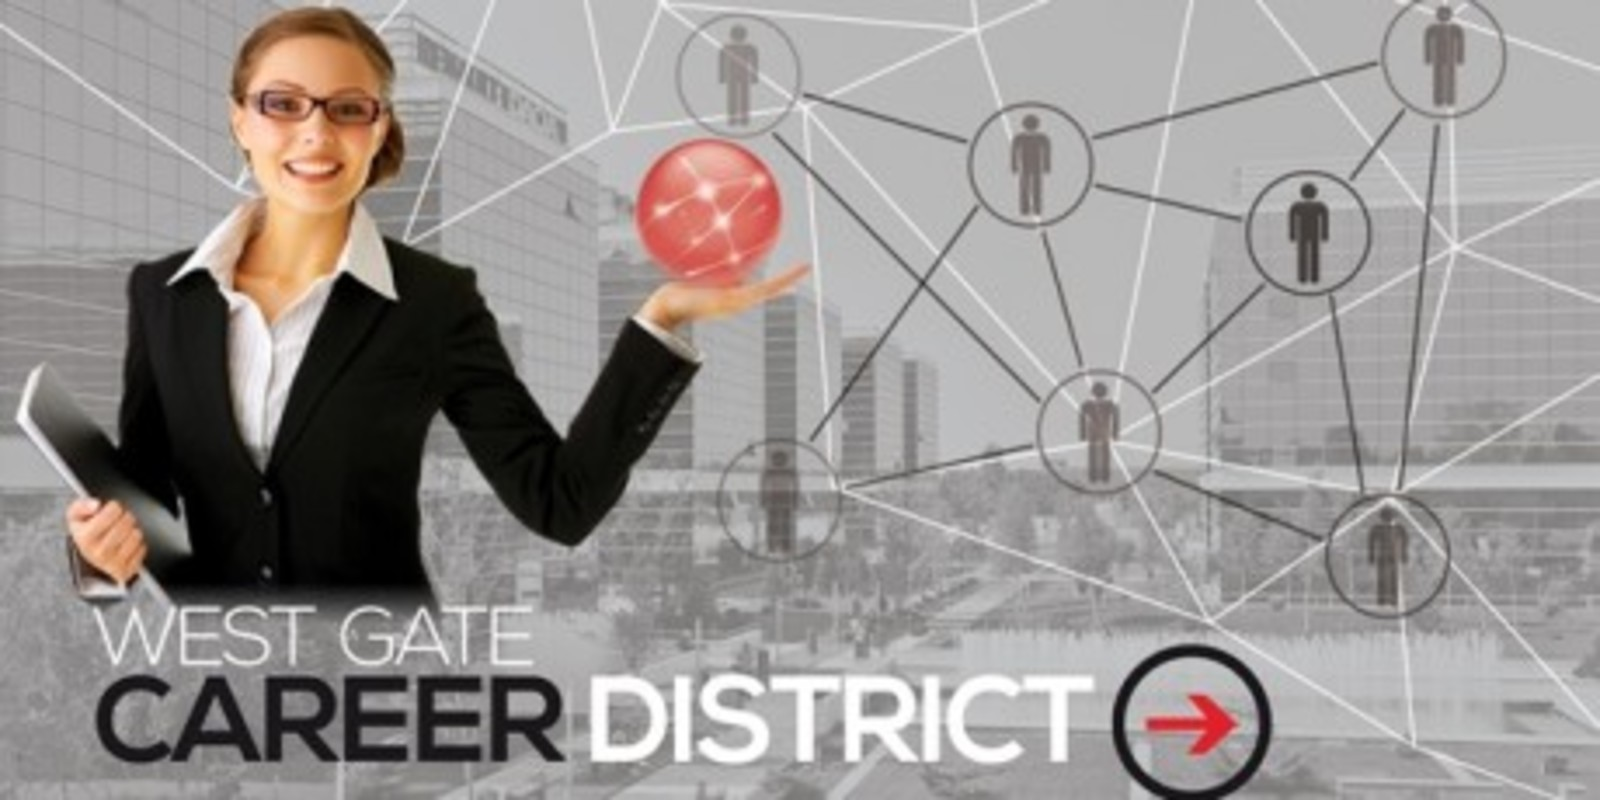 West Gate Career District website (1)